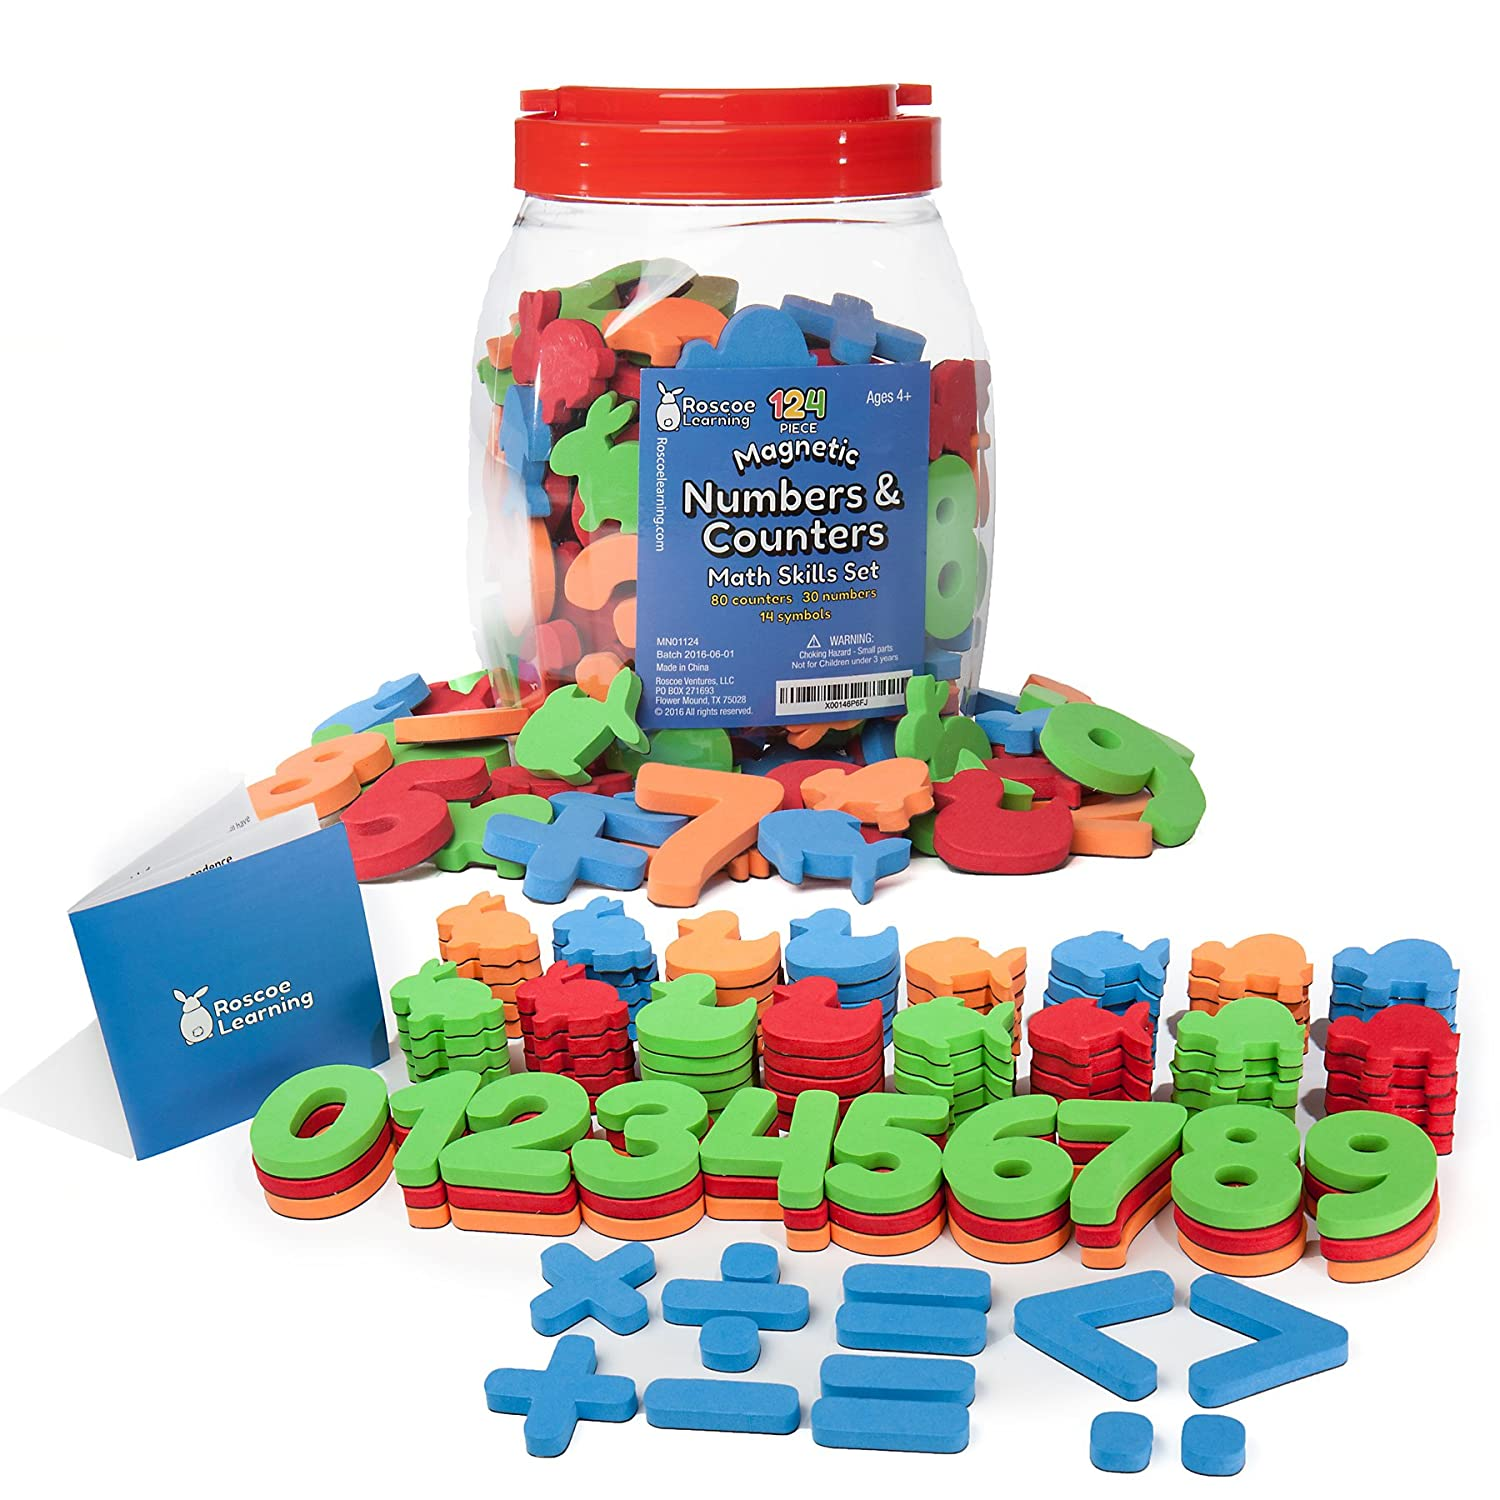 com roscoe learning piece magnetic numbers and com roscoe learning 124 piece magnetic numbers and counters math skills set toys games